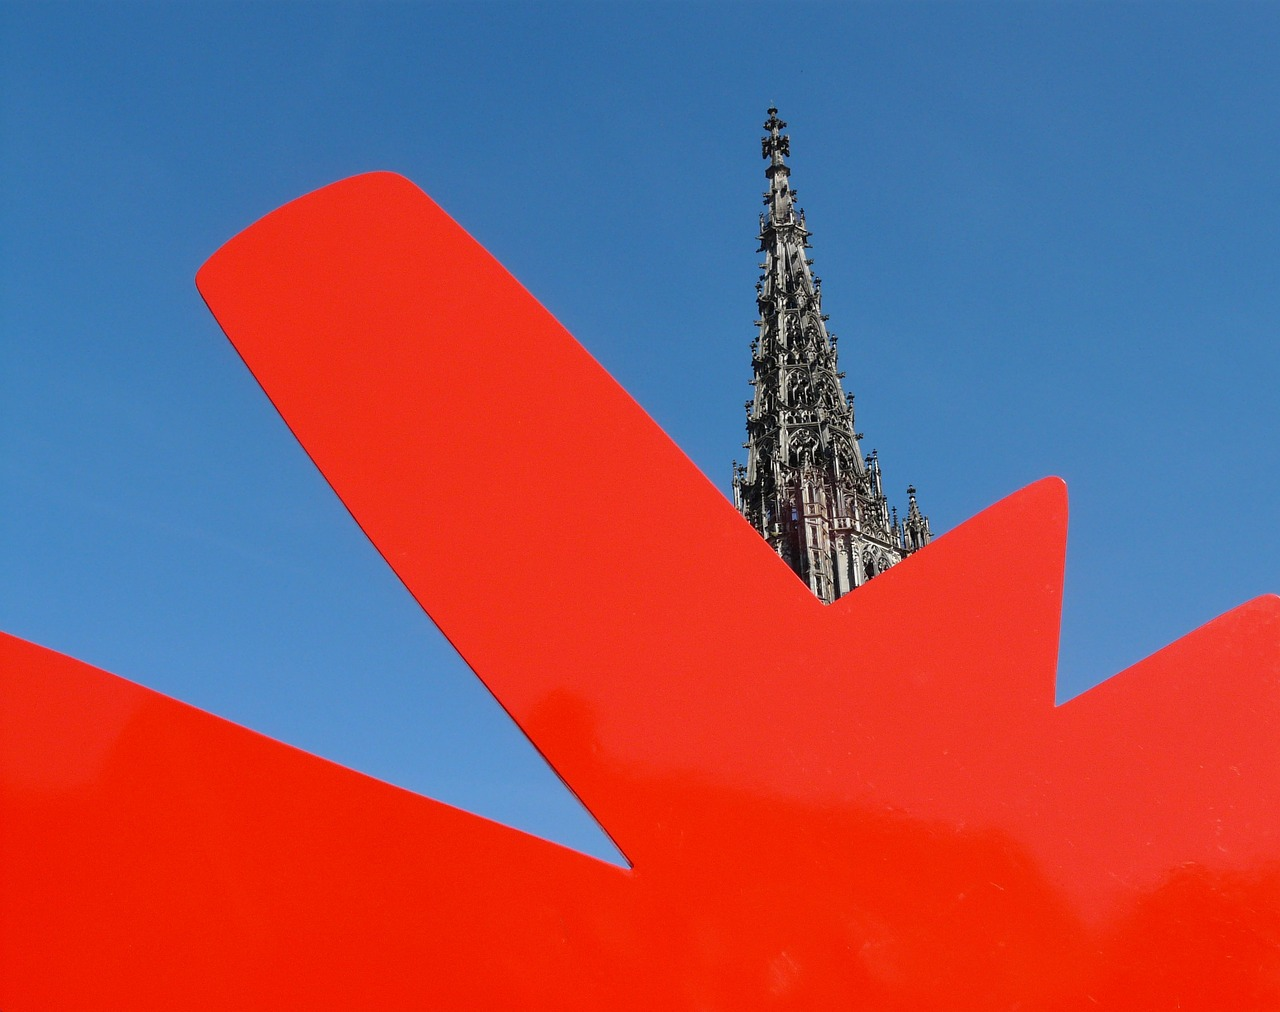 art,artwork,keith haring,red dog,ulm,ulm cathedral,münster,church,steeple,building,architecture,sky,blue,red,free pictures, free photos, free images, royalty free, free illustrations, public domain